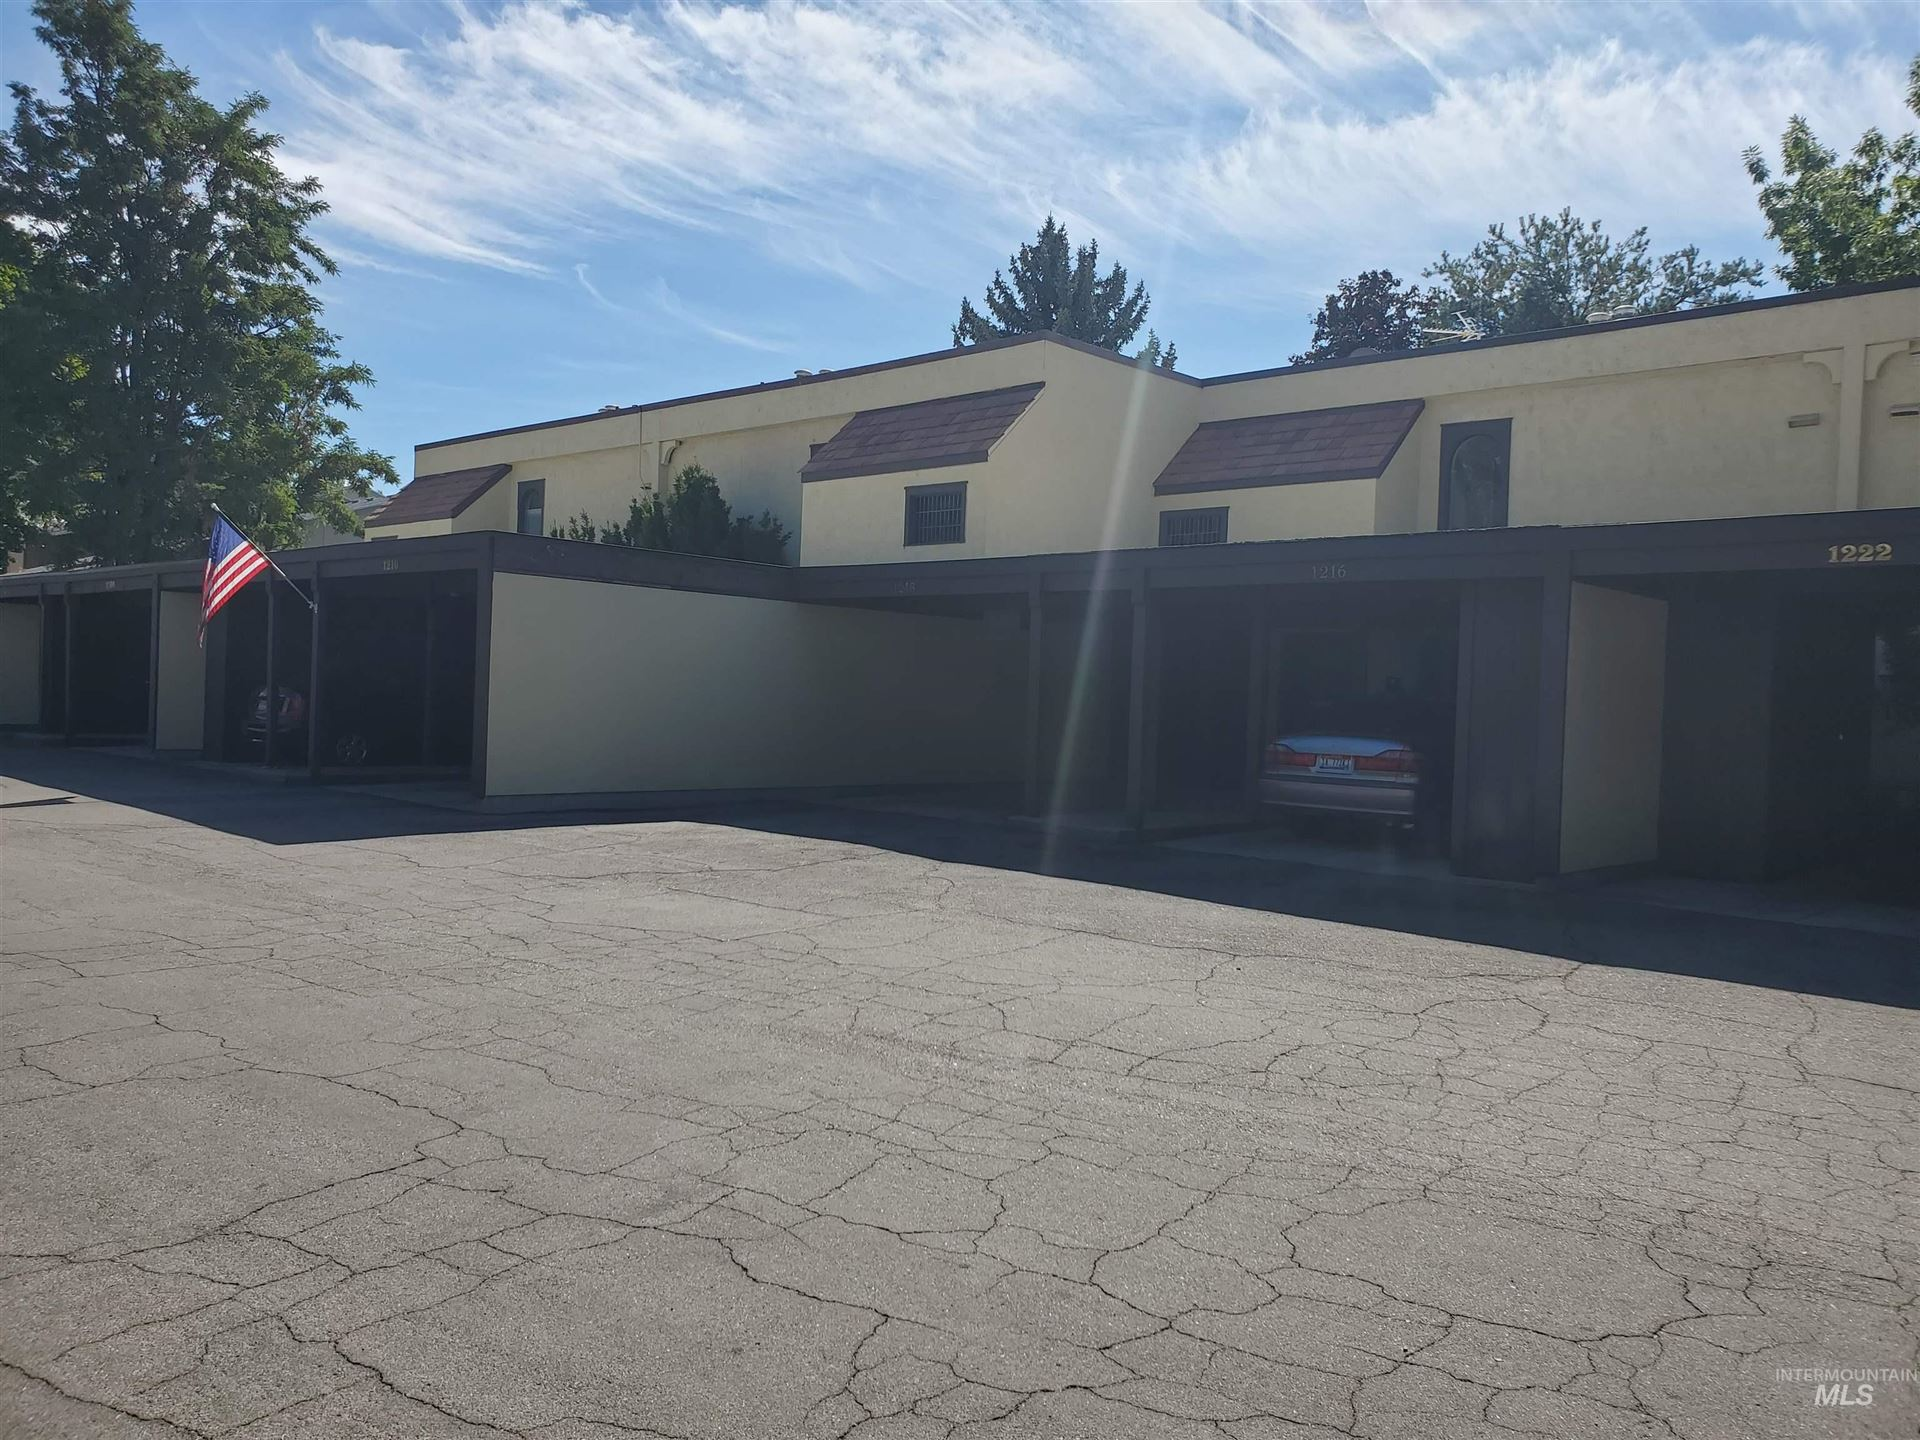 Photo of 1218 N Camelot Dr, Boise, ID 83704 (MLS # 98819325)